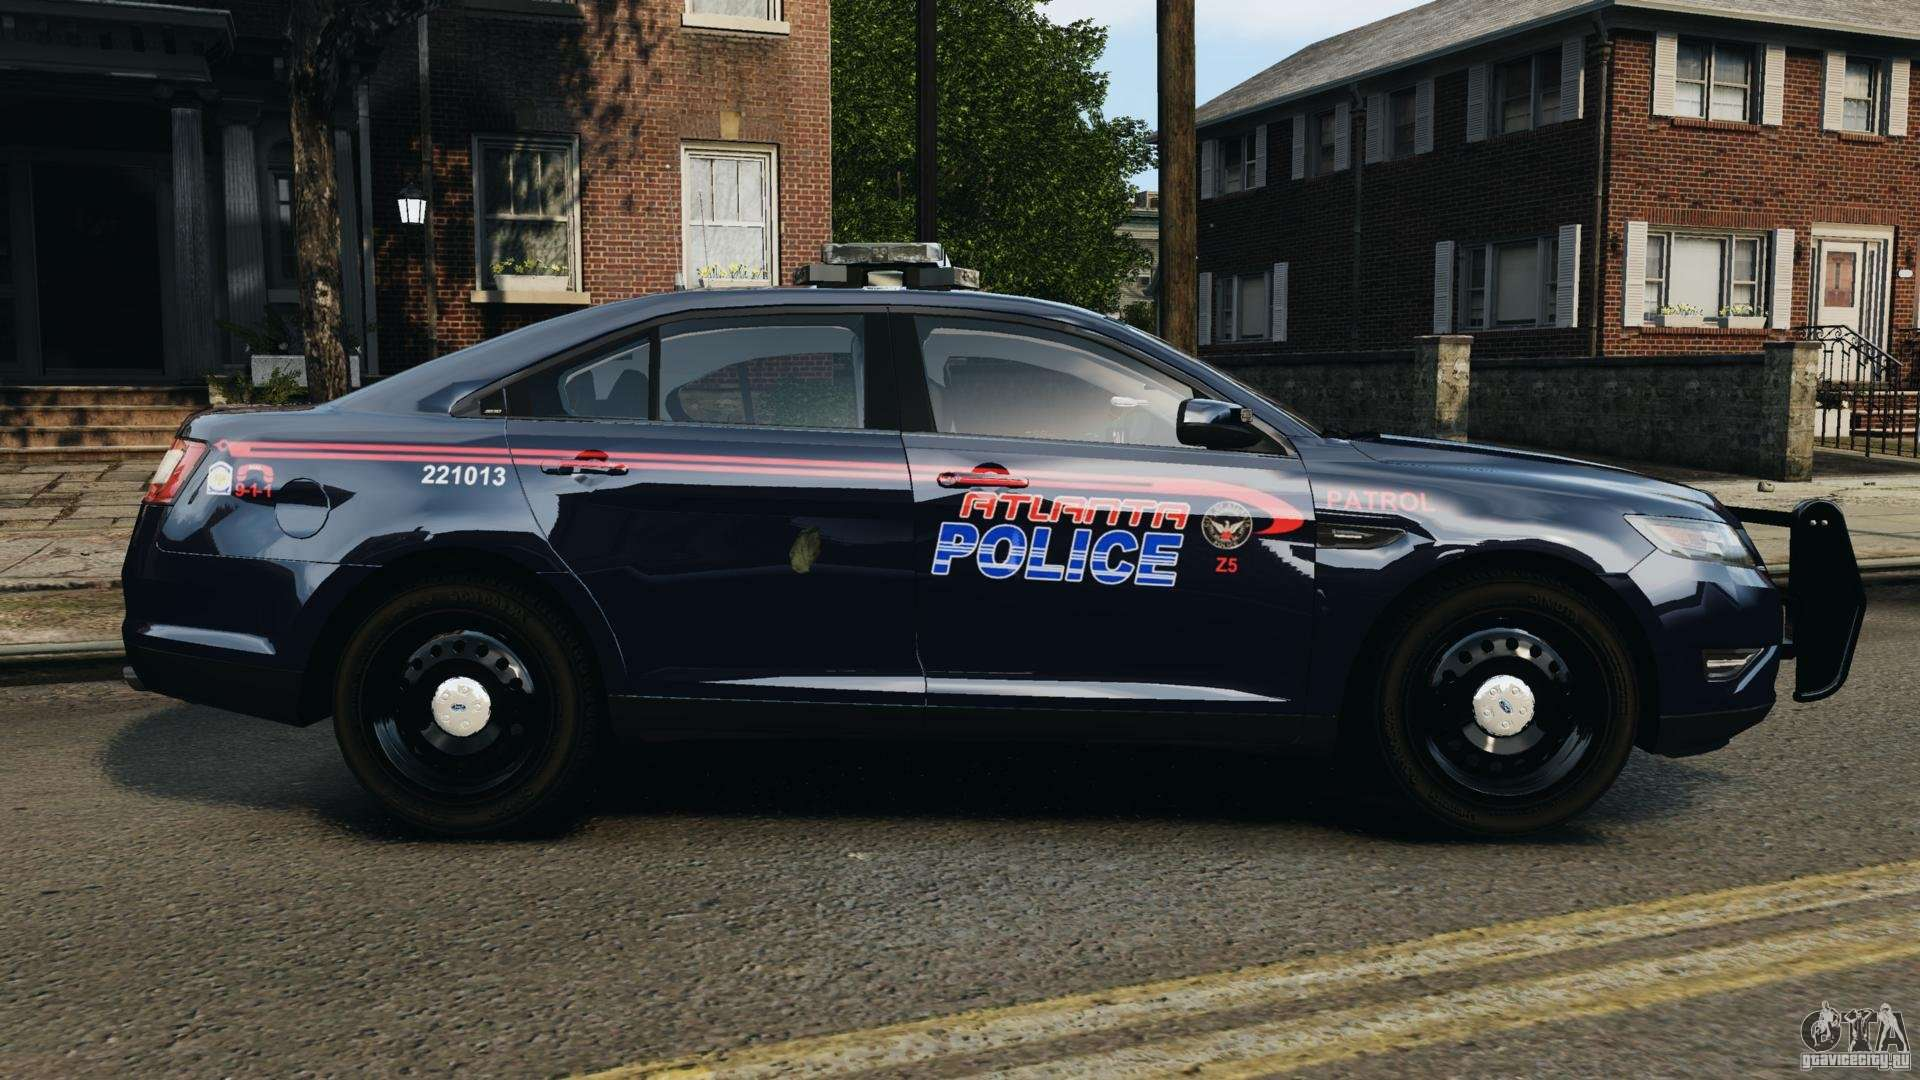 Police Car Sheriff Is Ford Gta